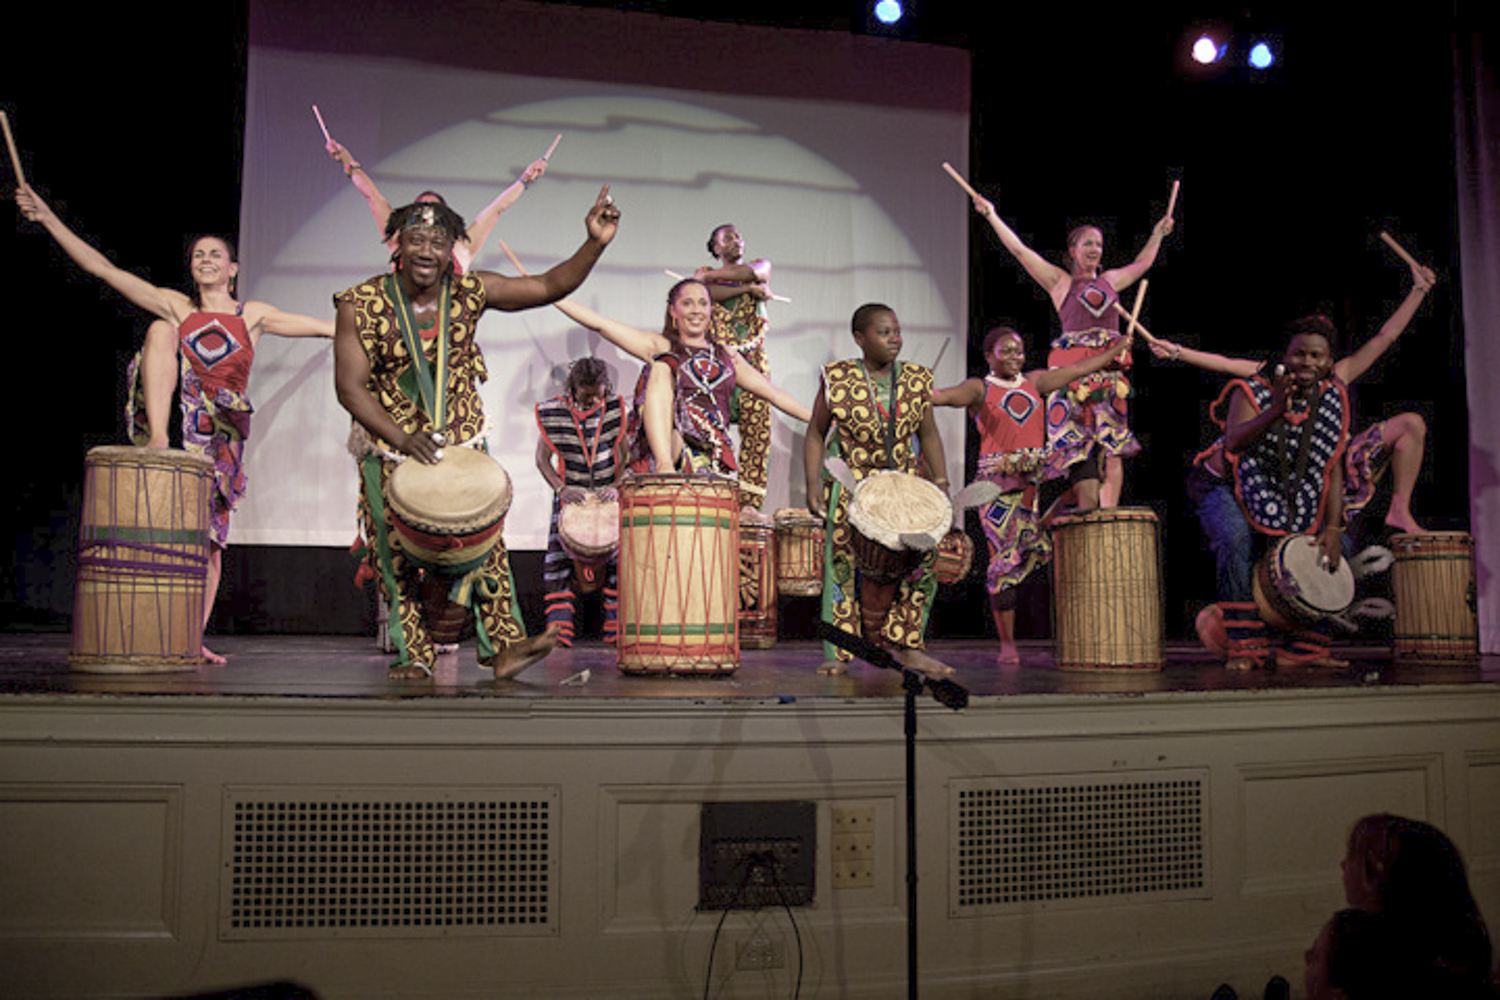 West African drum and dance conference Image by, Jean Luc Dushime